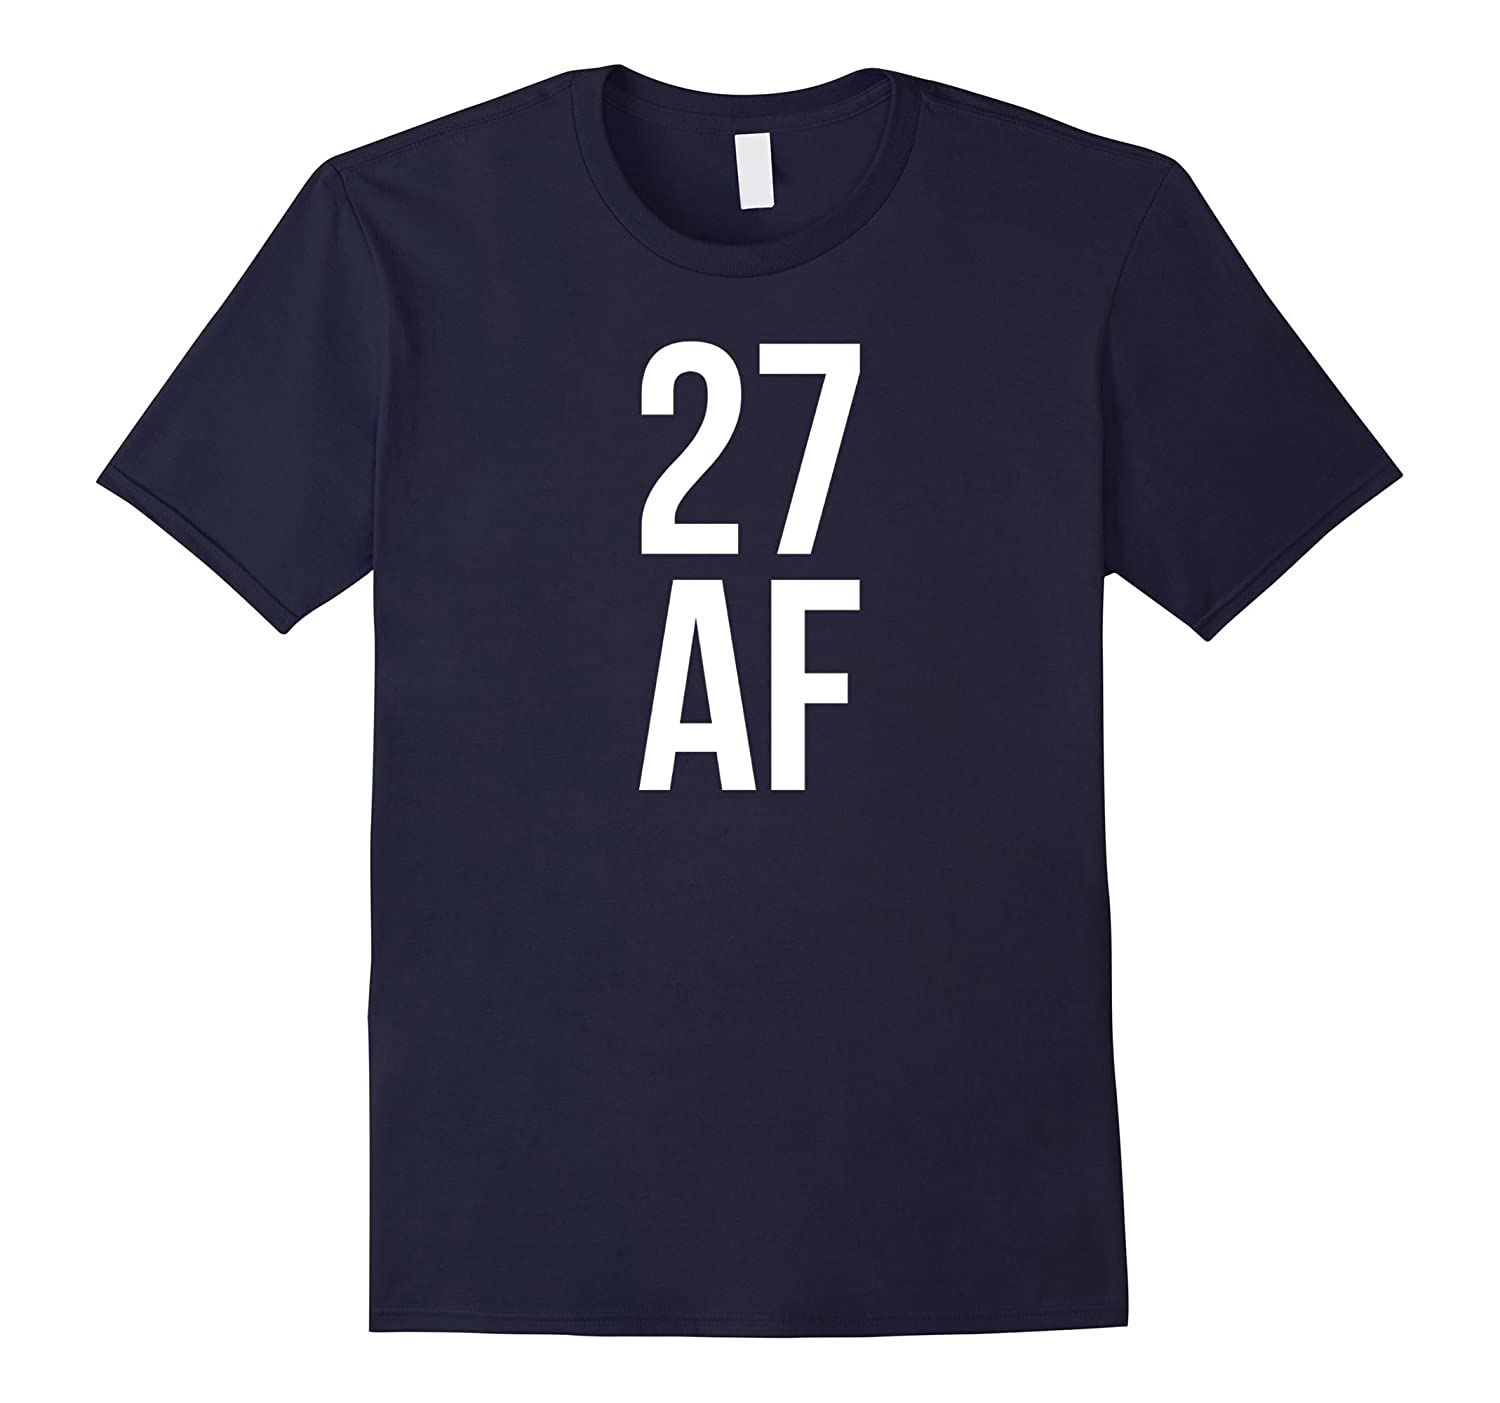 27 AF Tshirt 27th Birthday Shirt Tee Top Mens Womens-PL